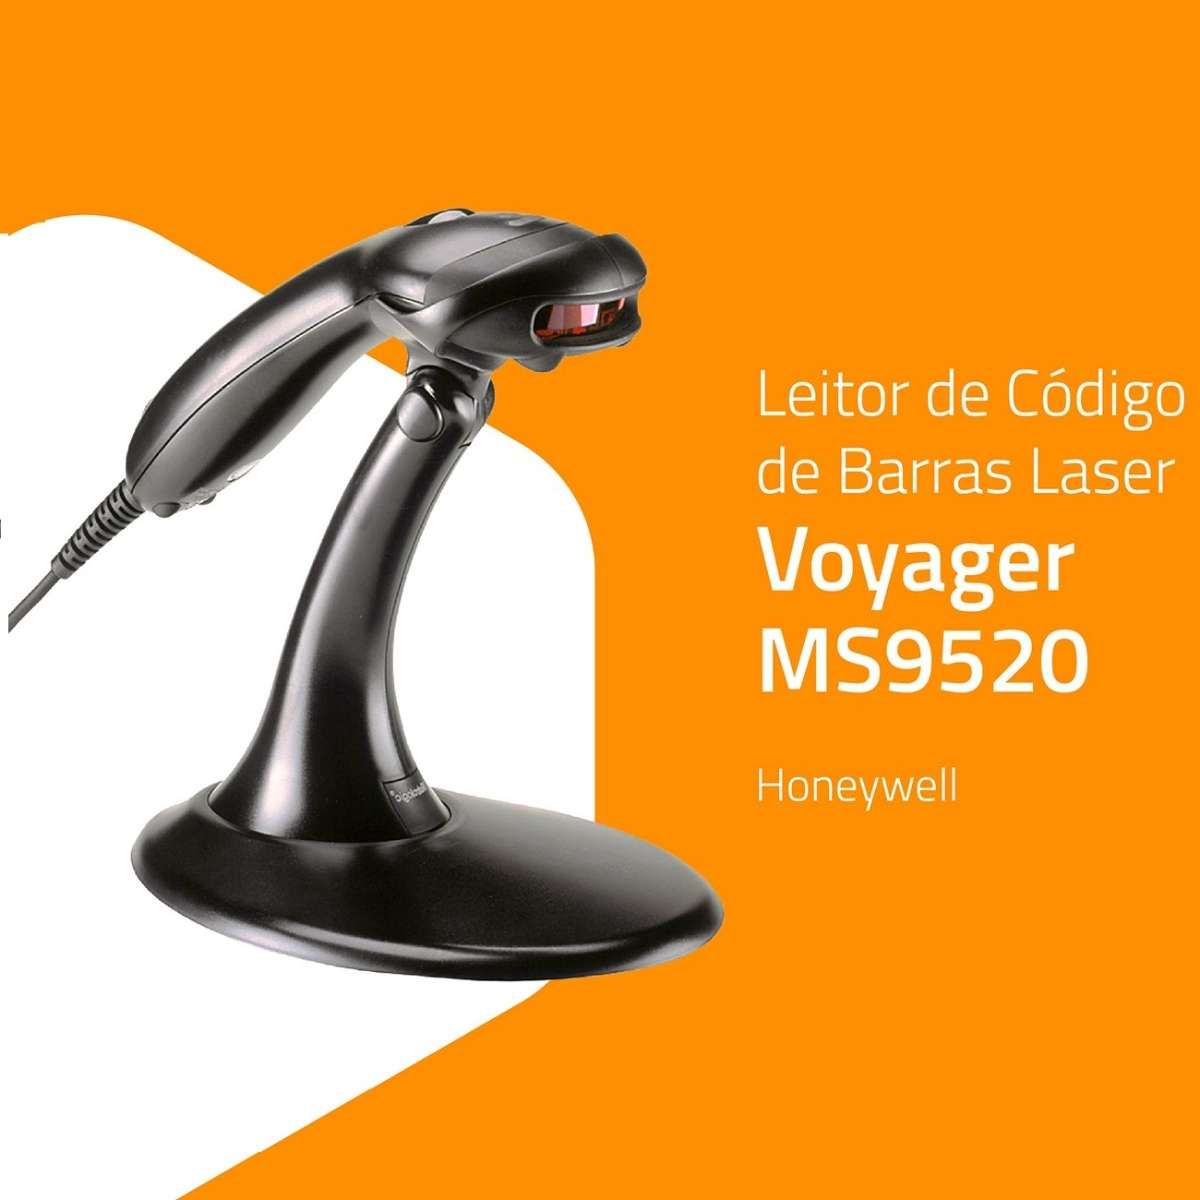 Leitor Honeywell Laser Voyager USB c/Sup.MK9520-32A38-Z